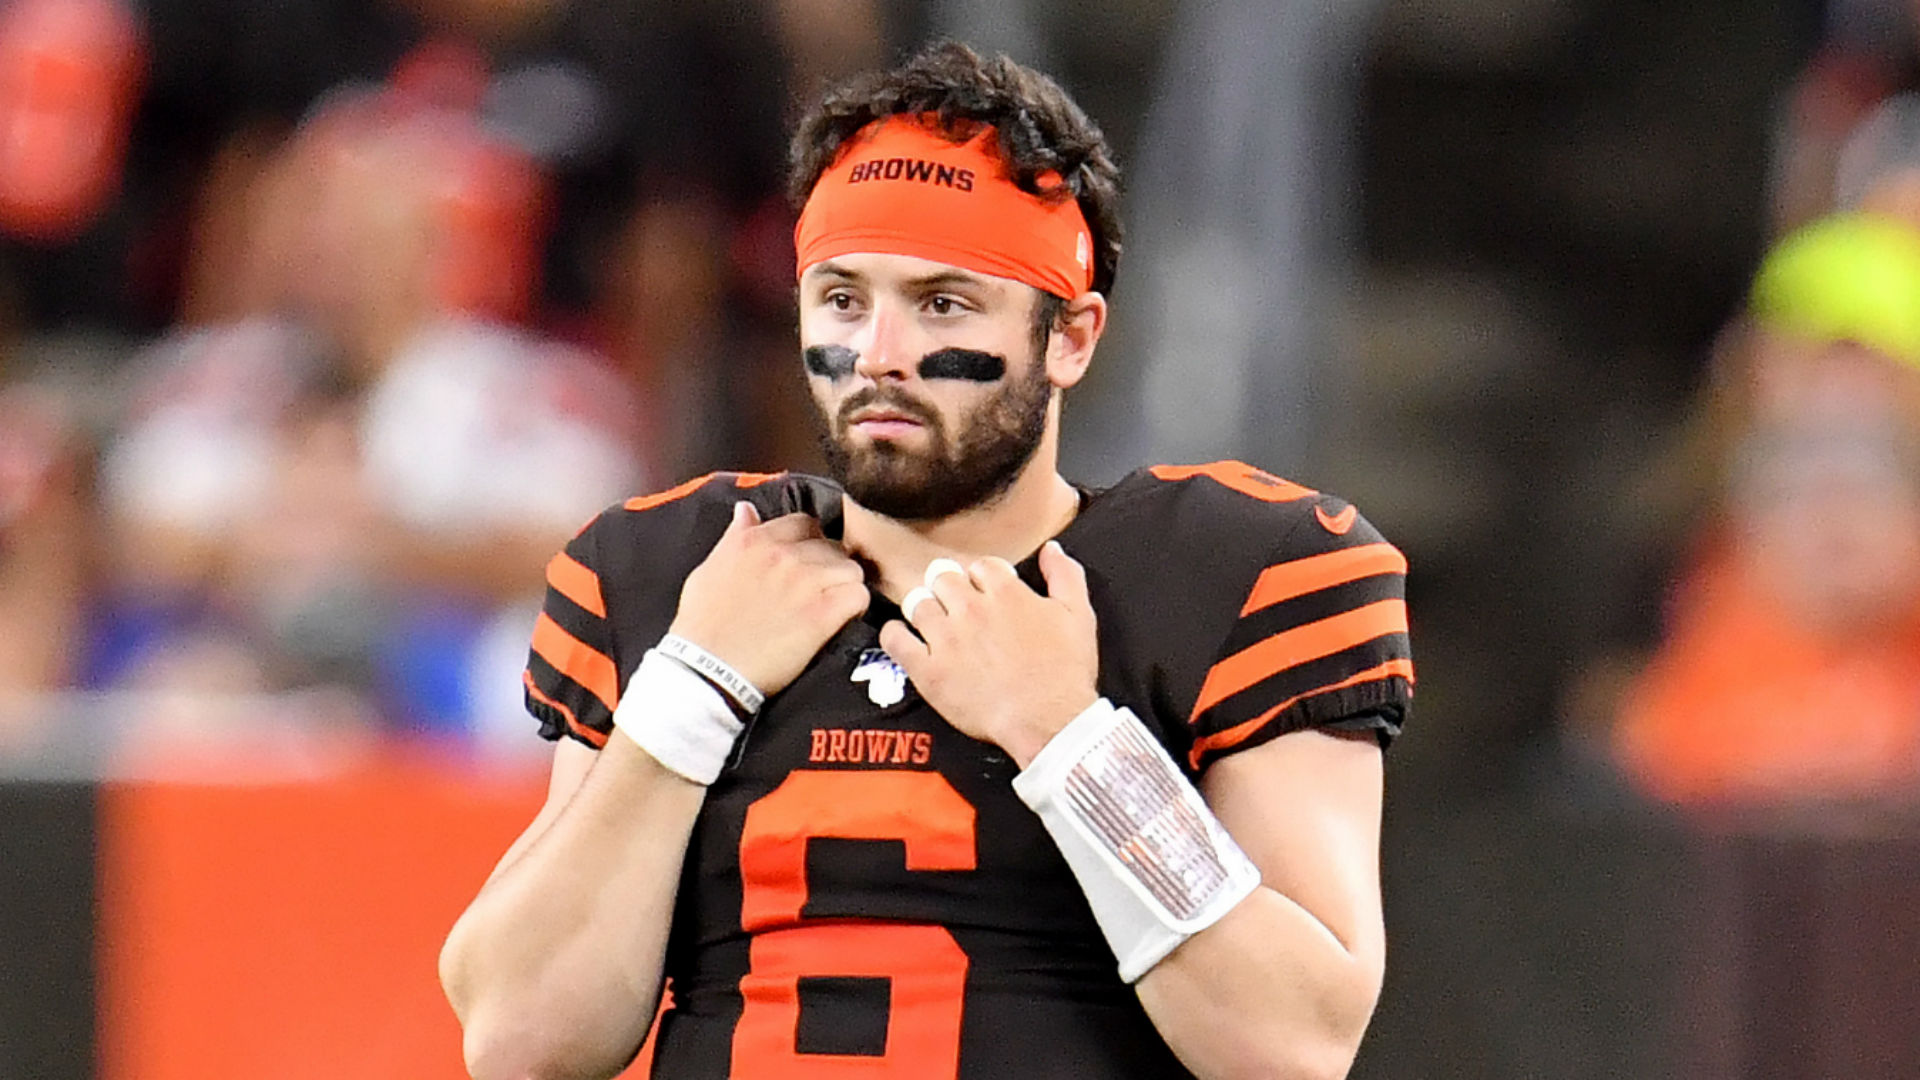 Baker Mayfield took the responsibility for the Cleveland Browns' 20-13 defeat to the Los Angeles Rams, as their sluggish start continued.